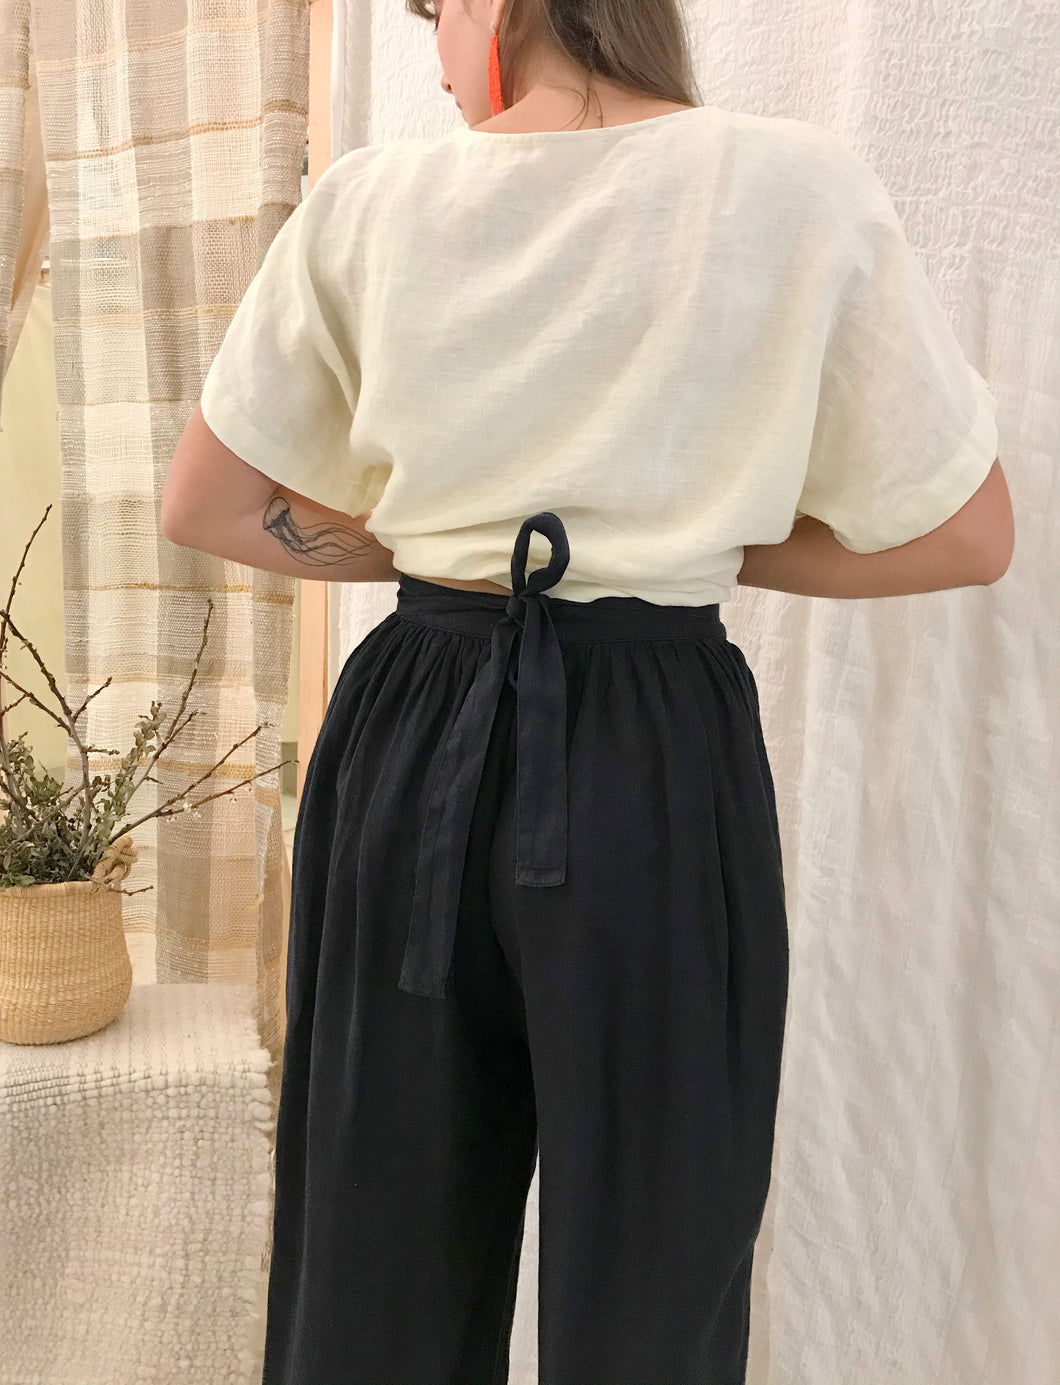 Black Crane Sack Pants / Black